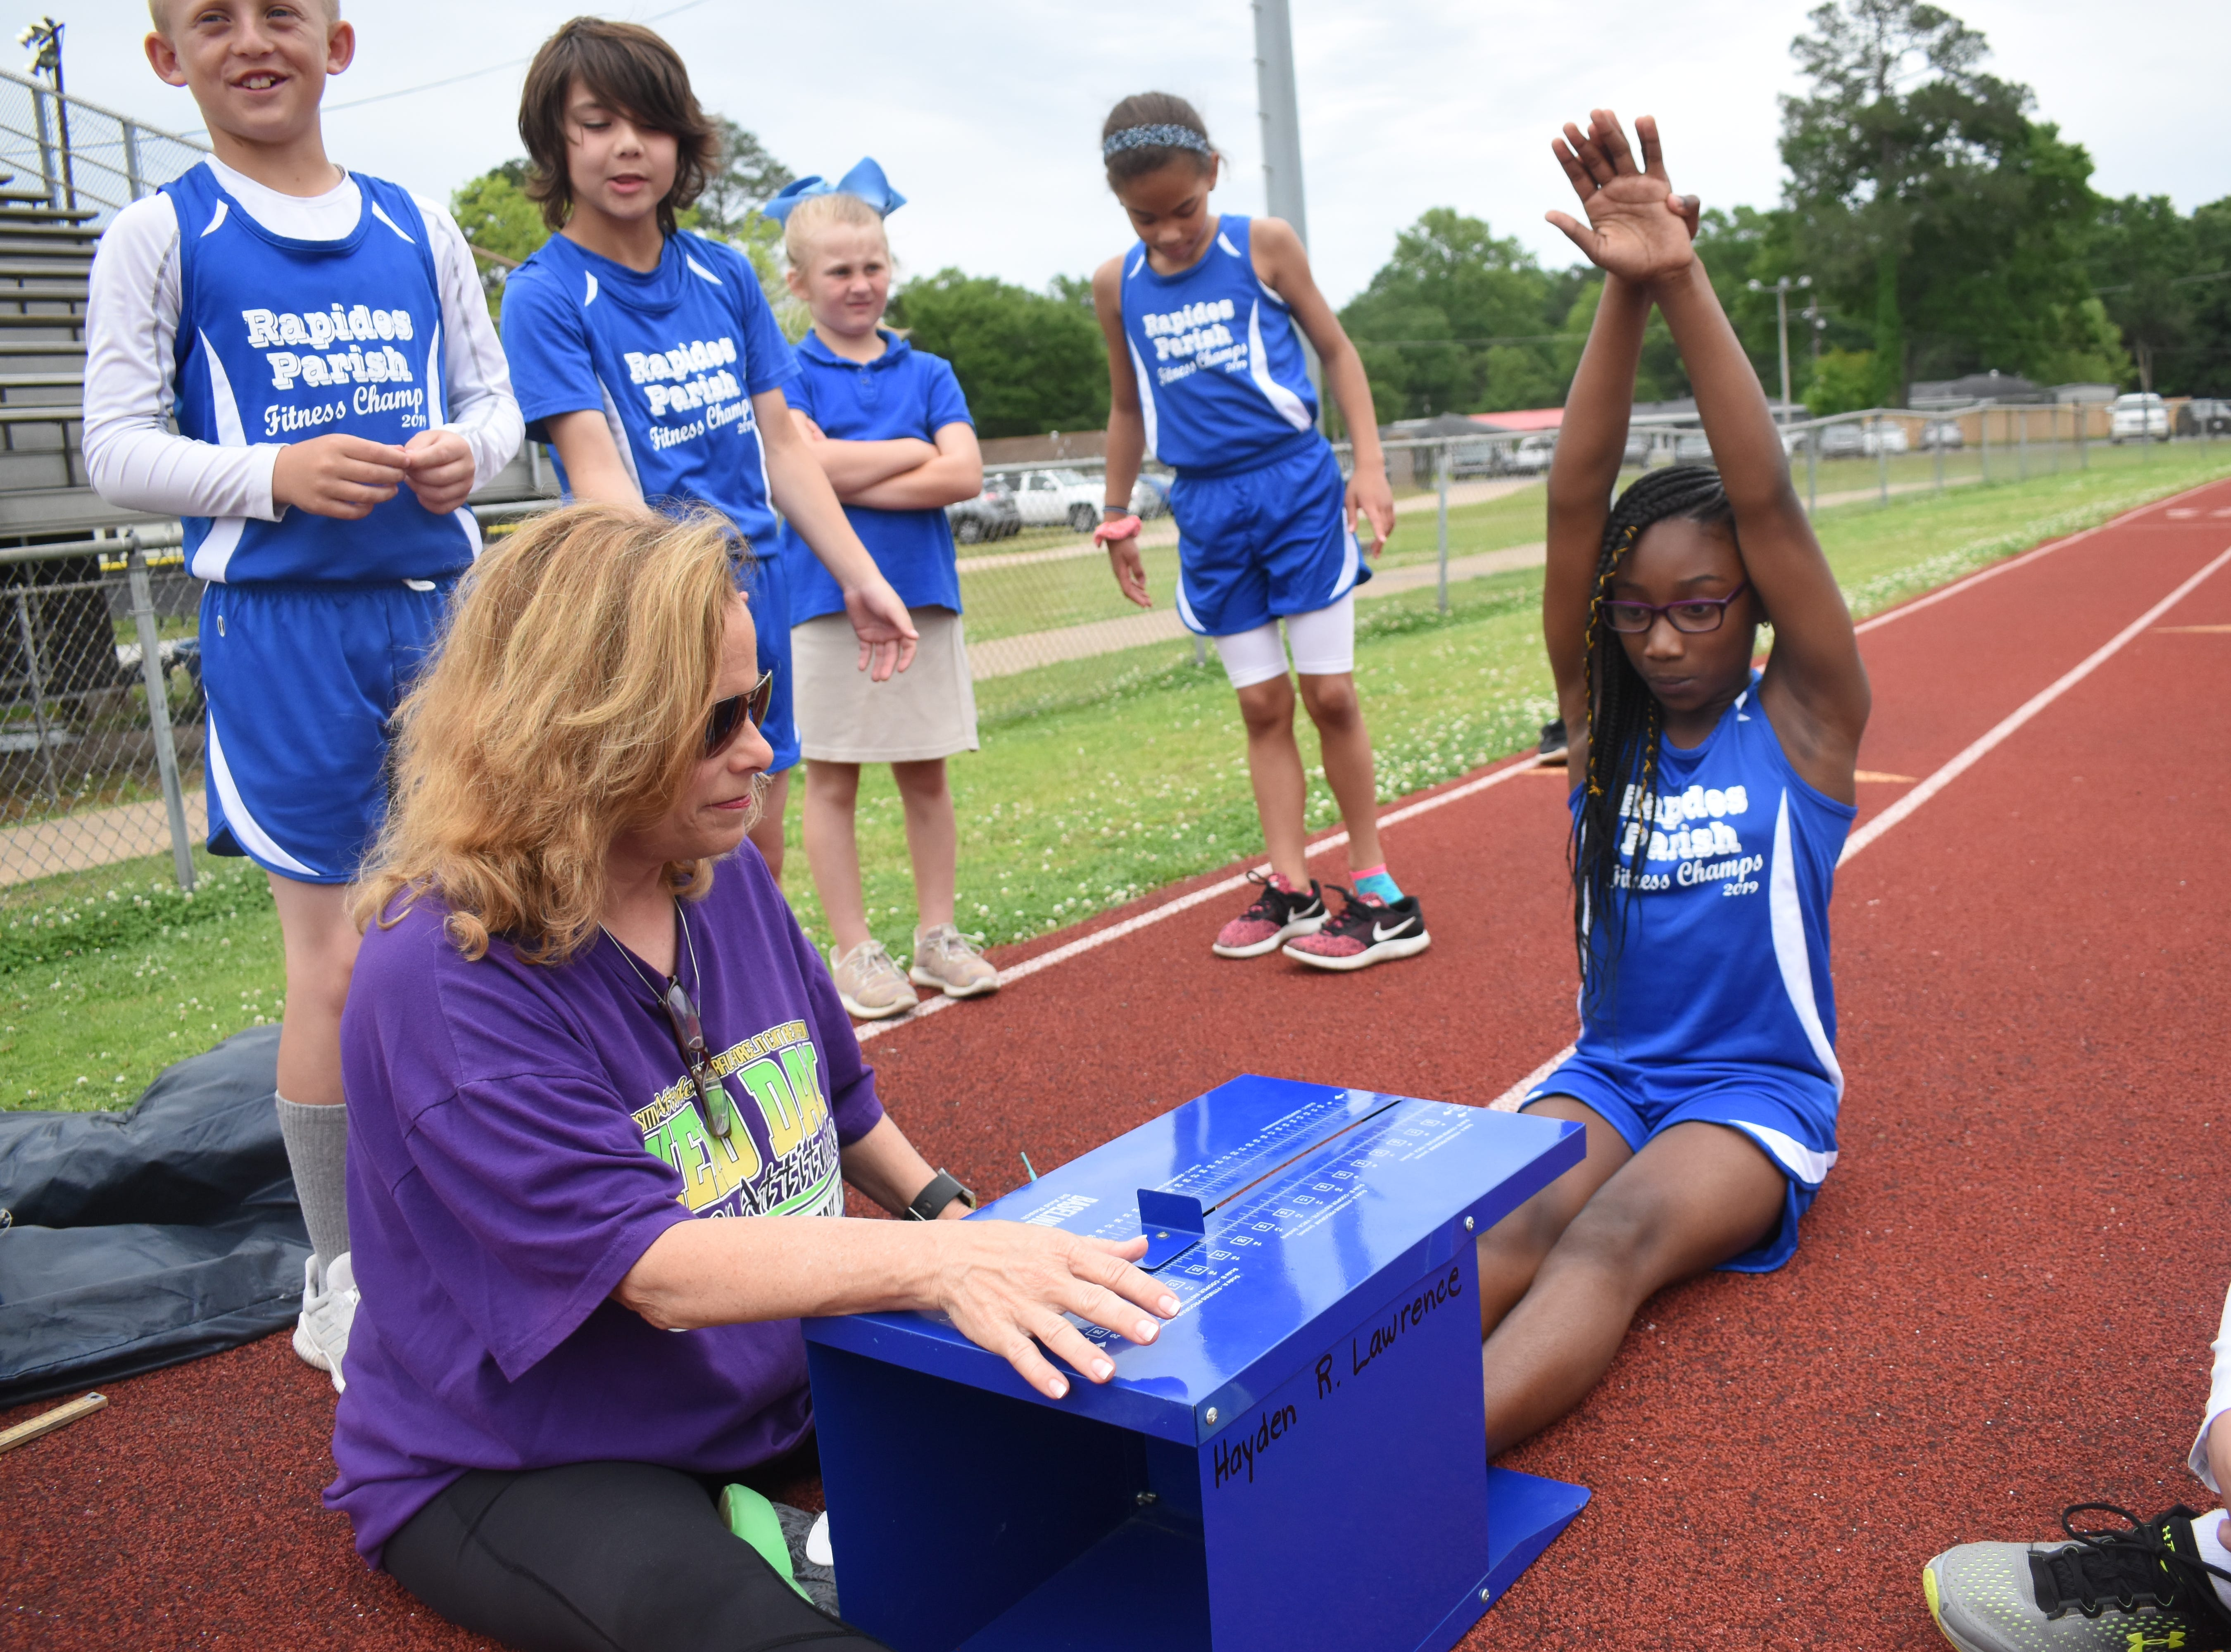 Margaret LaBorde, Rapides Parish Fitness team coach and coordinator (left) watches Amari Dupar of Cherokee Elementary School complete a sit and reach. Amari and other five other Rapides Parish elementary school students will compete in the 2019 State Championship Fitness Meet to be held Saturday, April 27, 2019 at Alexandria Senior High School. The meet is part of the Governor's Council on Fitness and Sports. Students from throughout Louisiana will compete in seven events: 50-yard dash, sit and reach, pull-ups,  shuttle run, curl-ups (sit-ups), standing long jump, and the 600-yard run. For the past three years, the Rapides Parish Fitness Team has placed first at the meet. Dean was the highest scoring boy last year and won the title of 2018 Mr. Fitness for the State of Louisiana. The meet will be from 10 a.m. to 2 p.m.